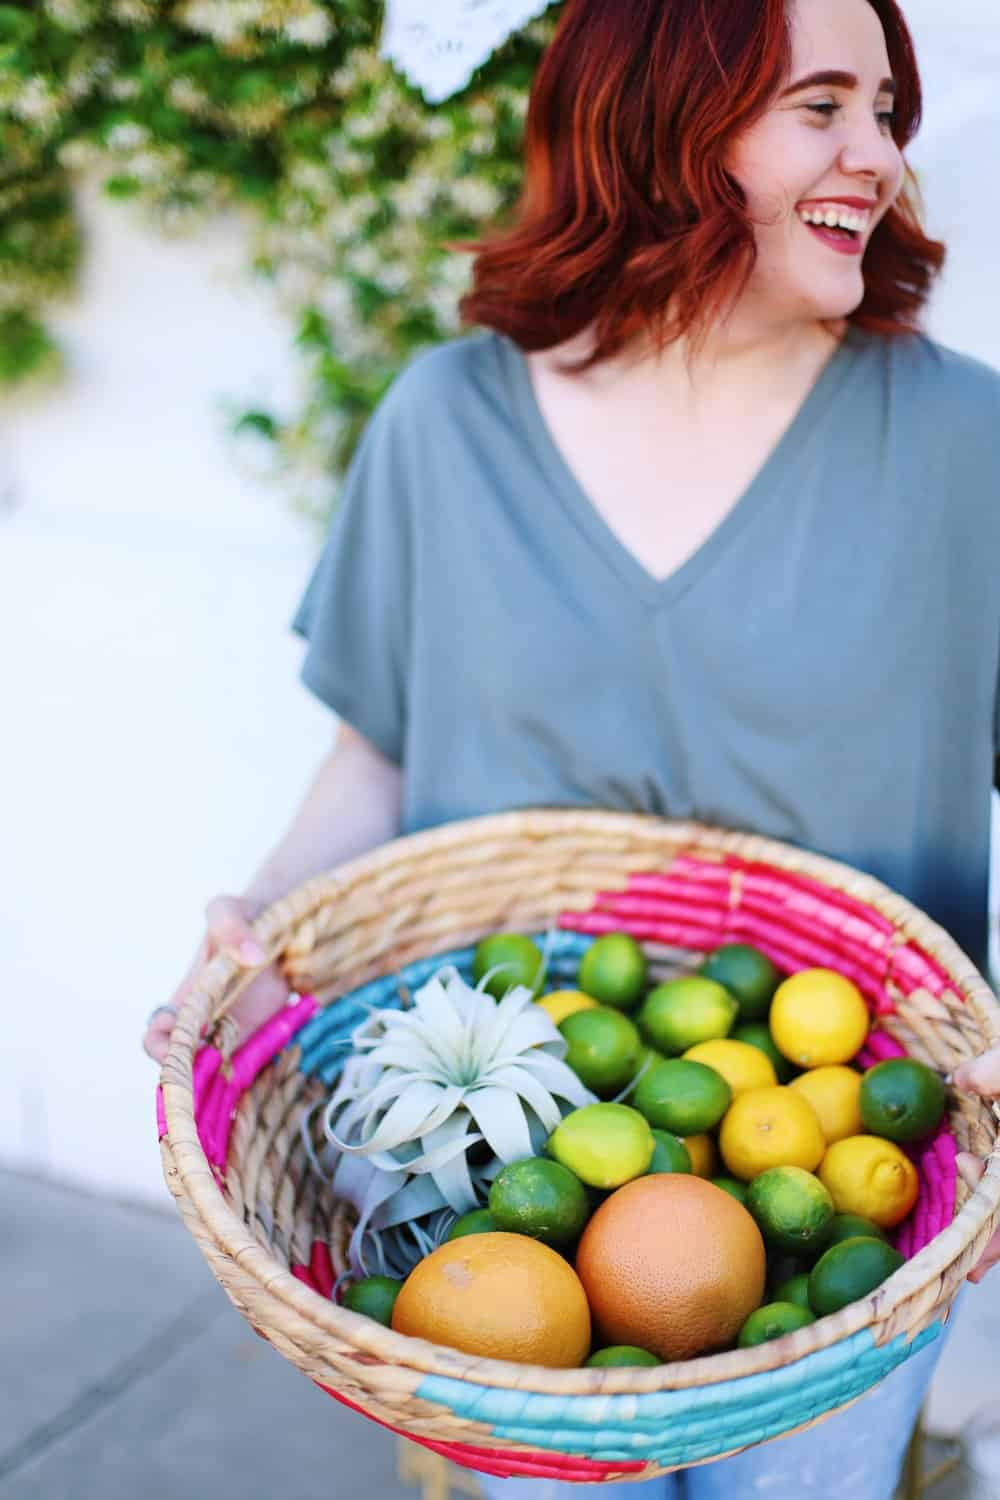 Two hands holding a wicker basket filled with grapefruits lemons and limes